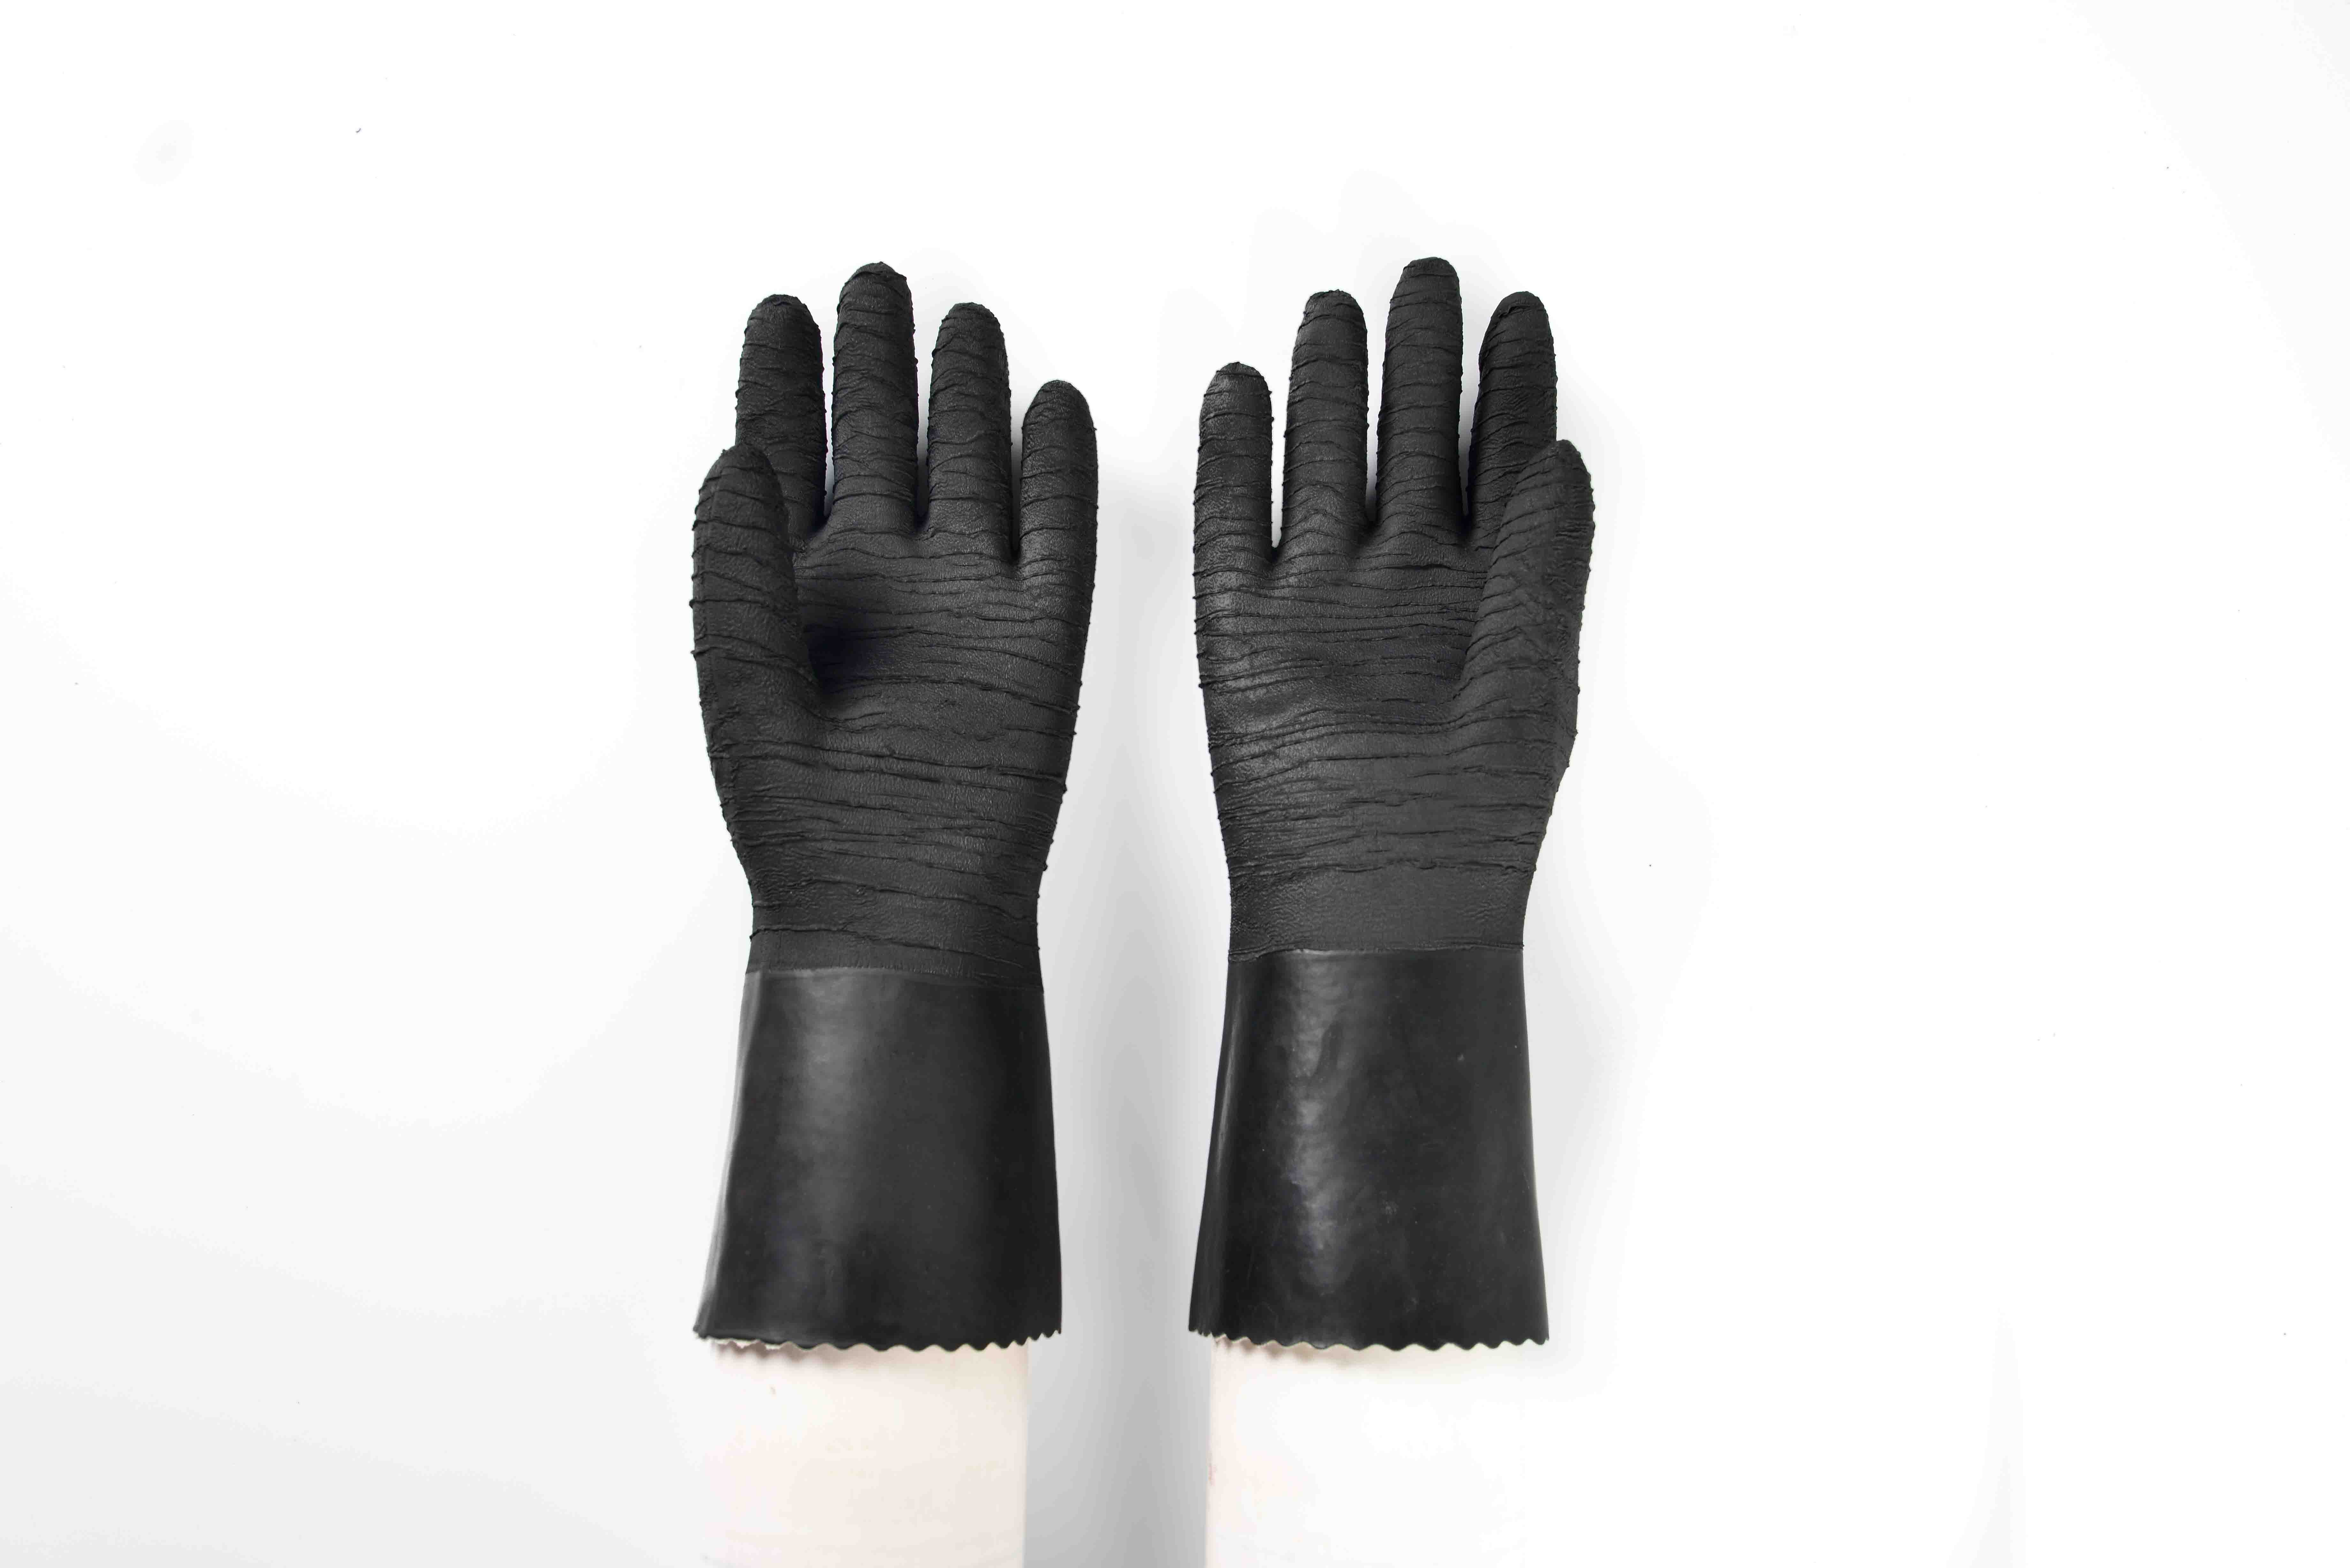 Fast delivery for 12″ rubber glove with cotton linning-rough finish Melbourne Manufacturer